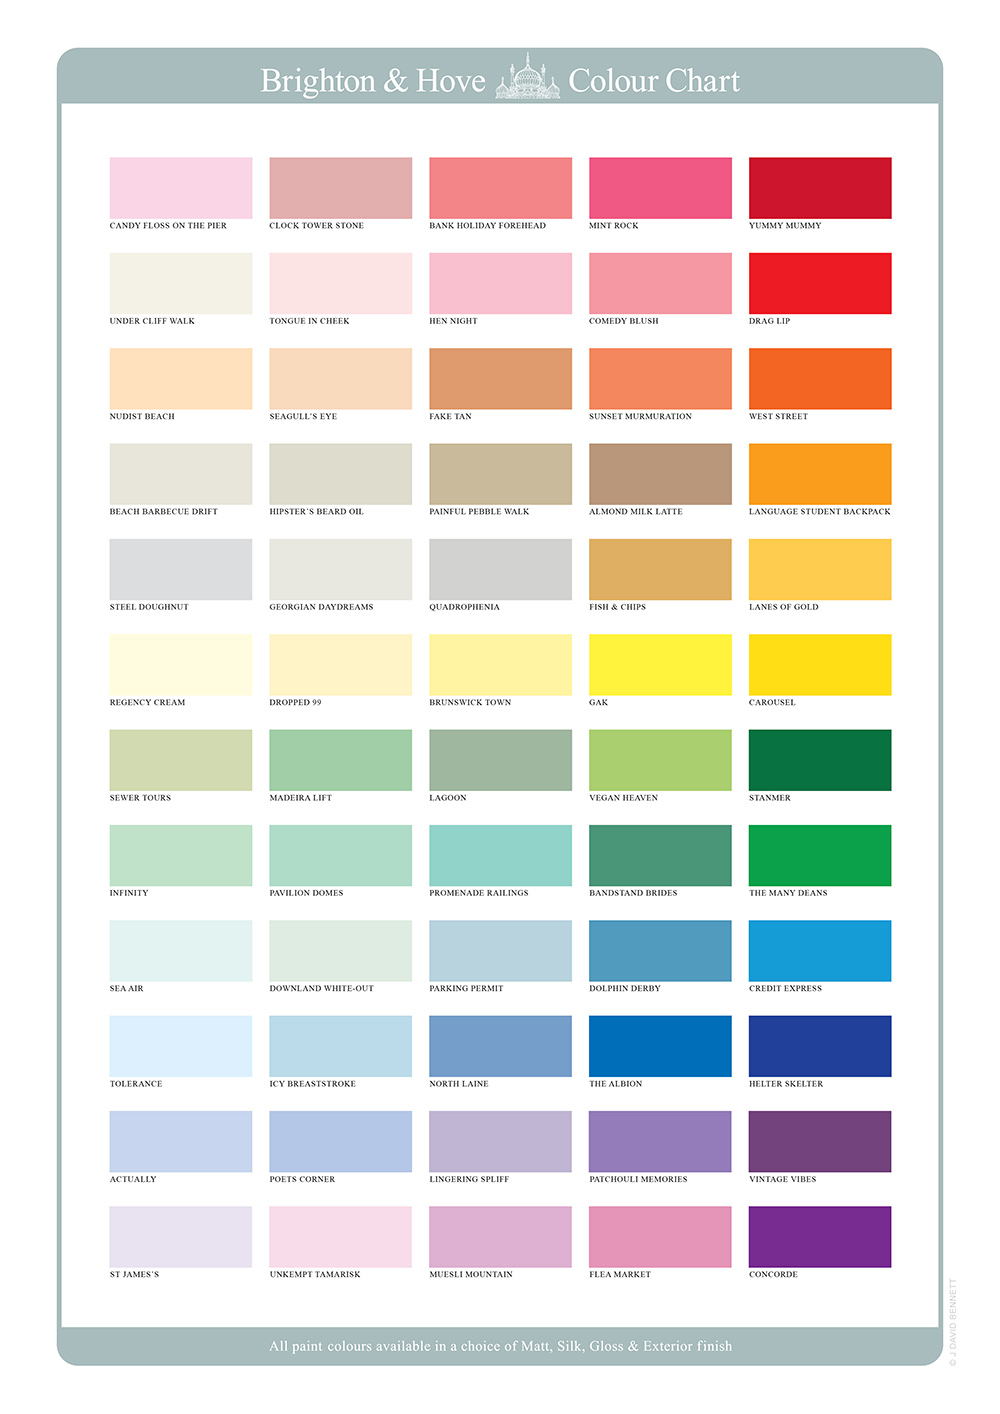 brighton-and-hove-colour-chart-by-j-david-bennett